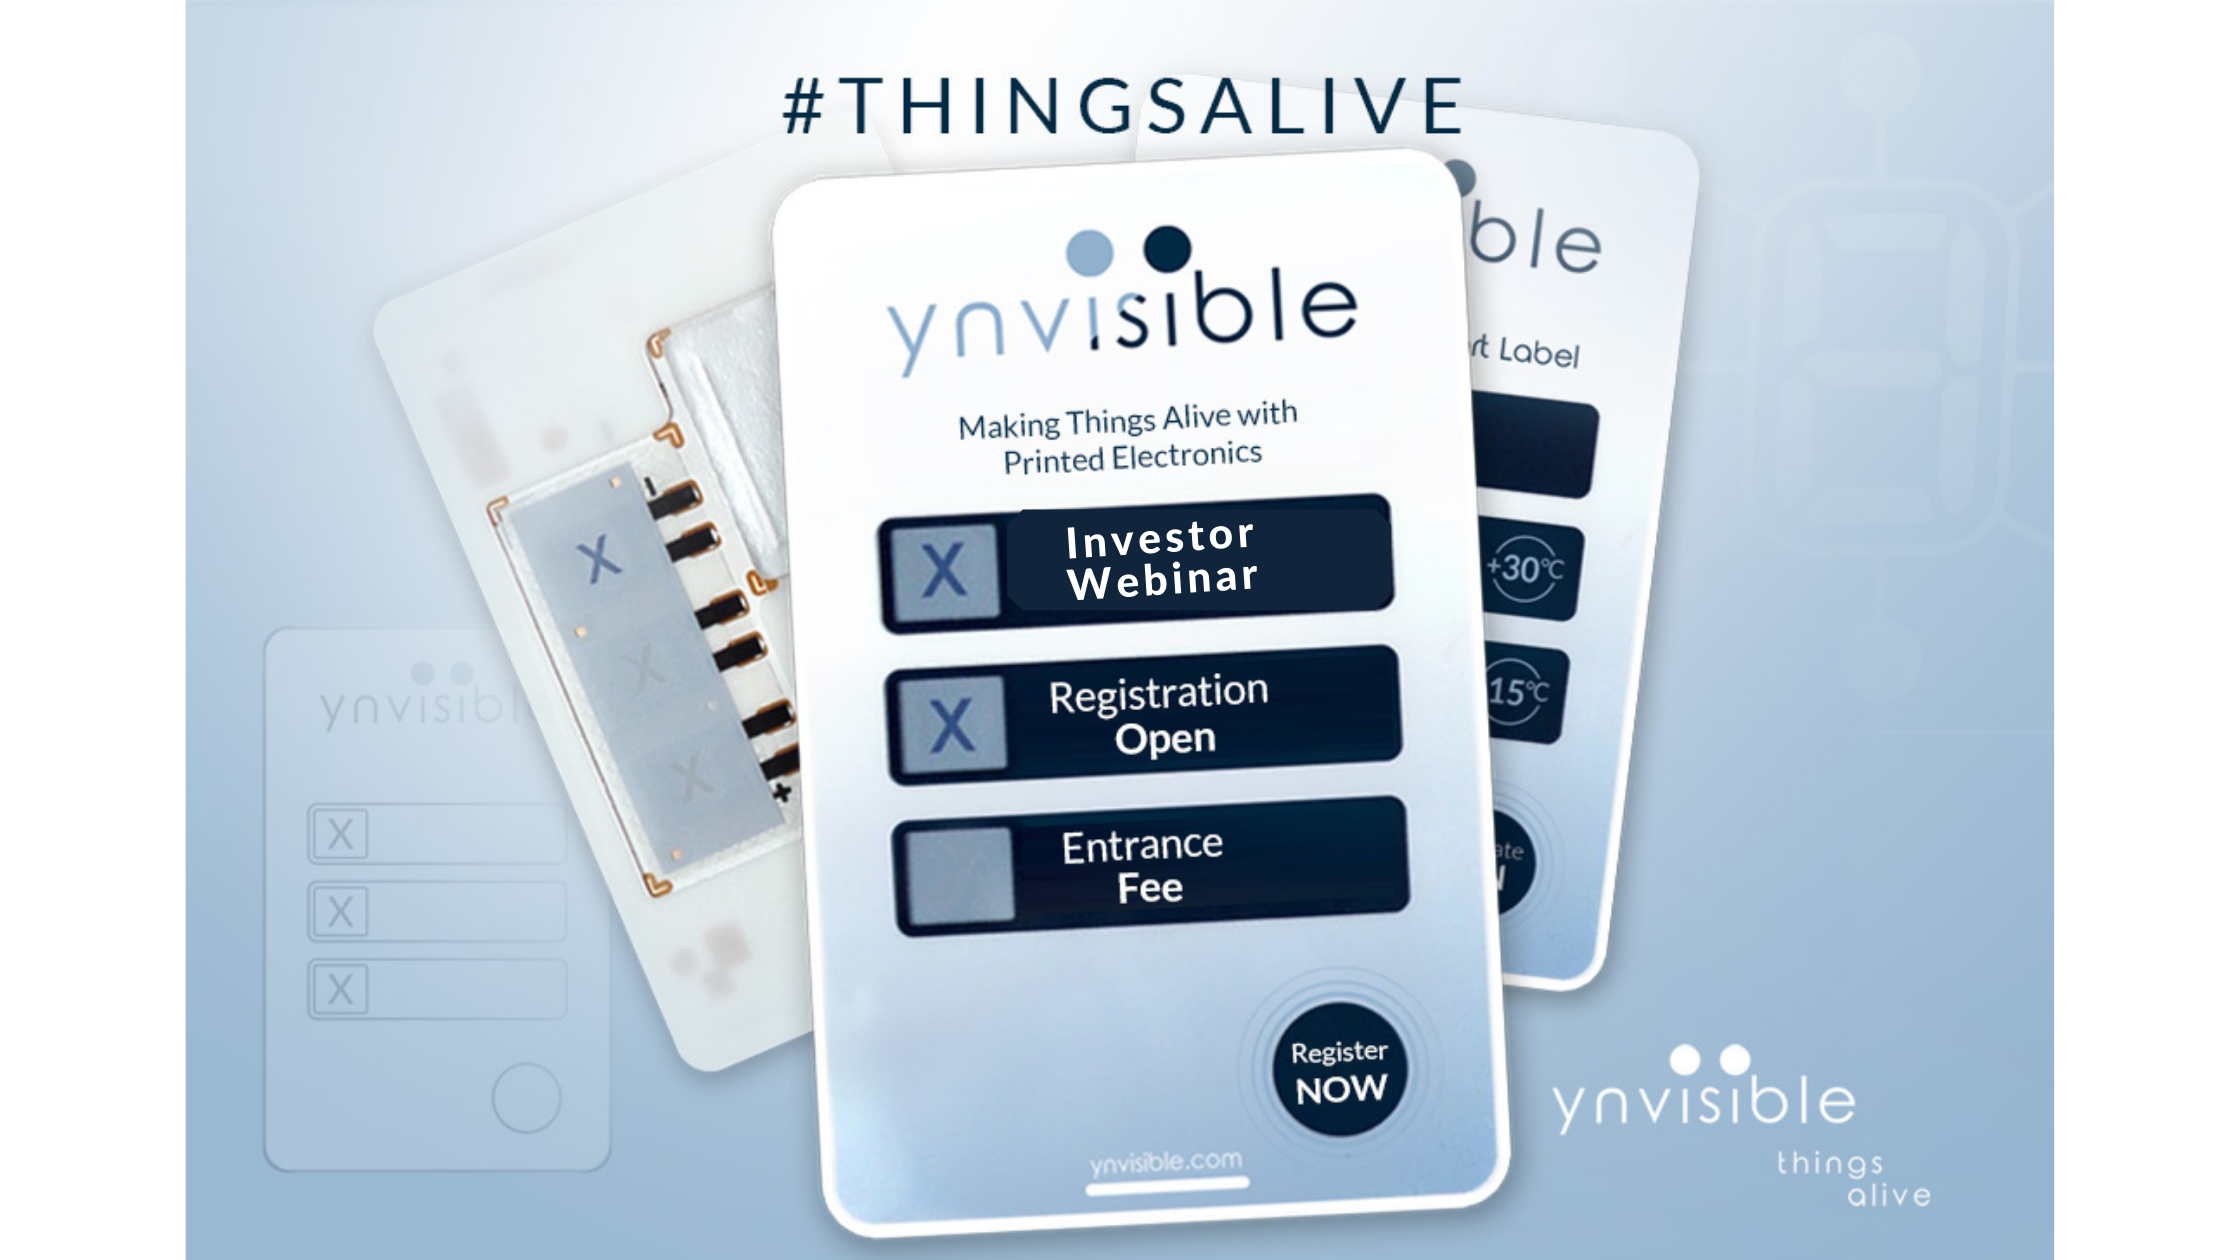 Stay Informed At The Things AliveInvestor Update